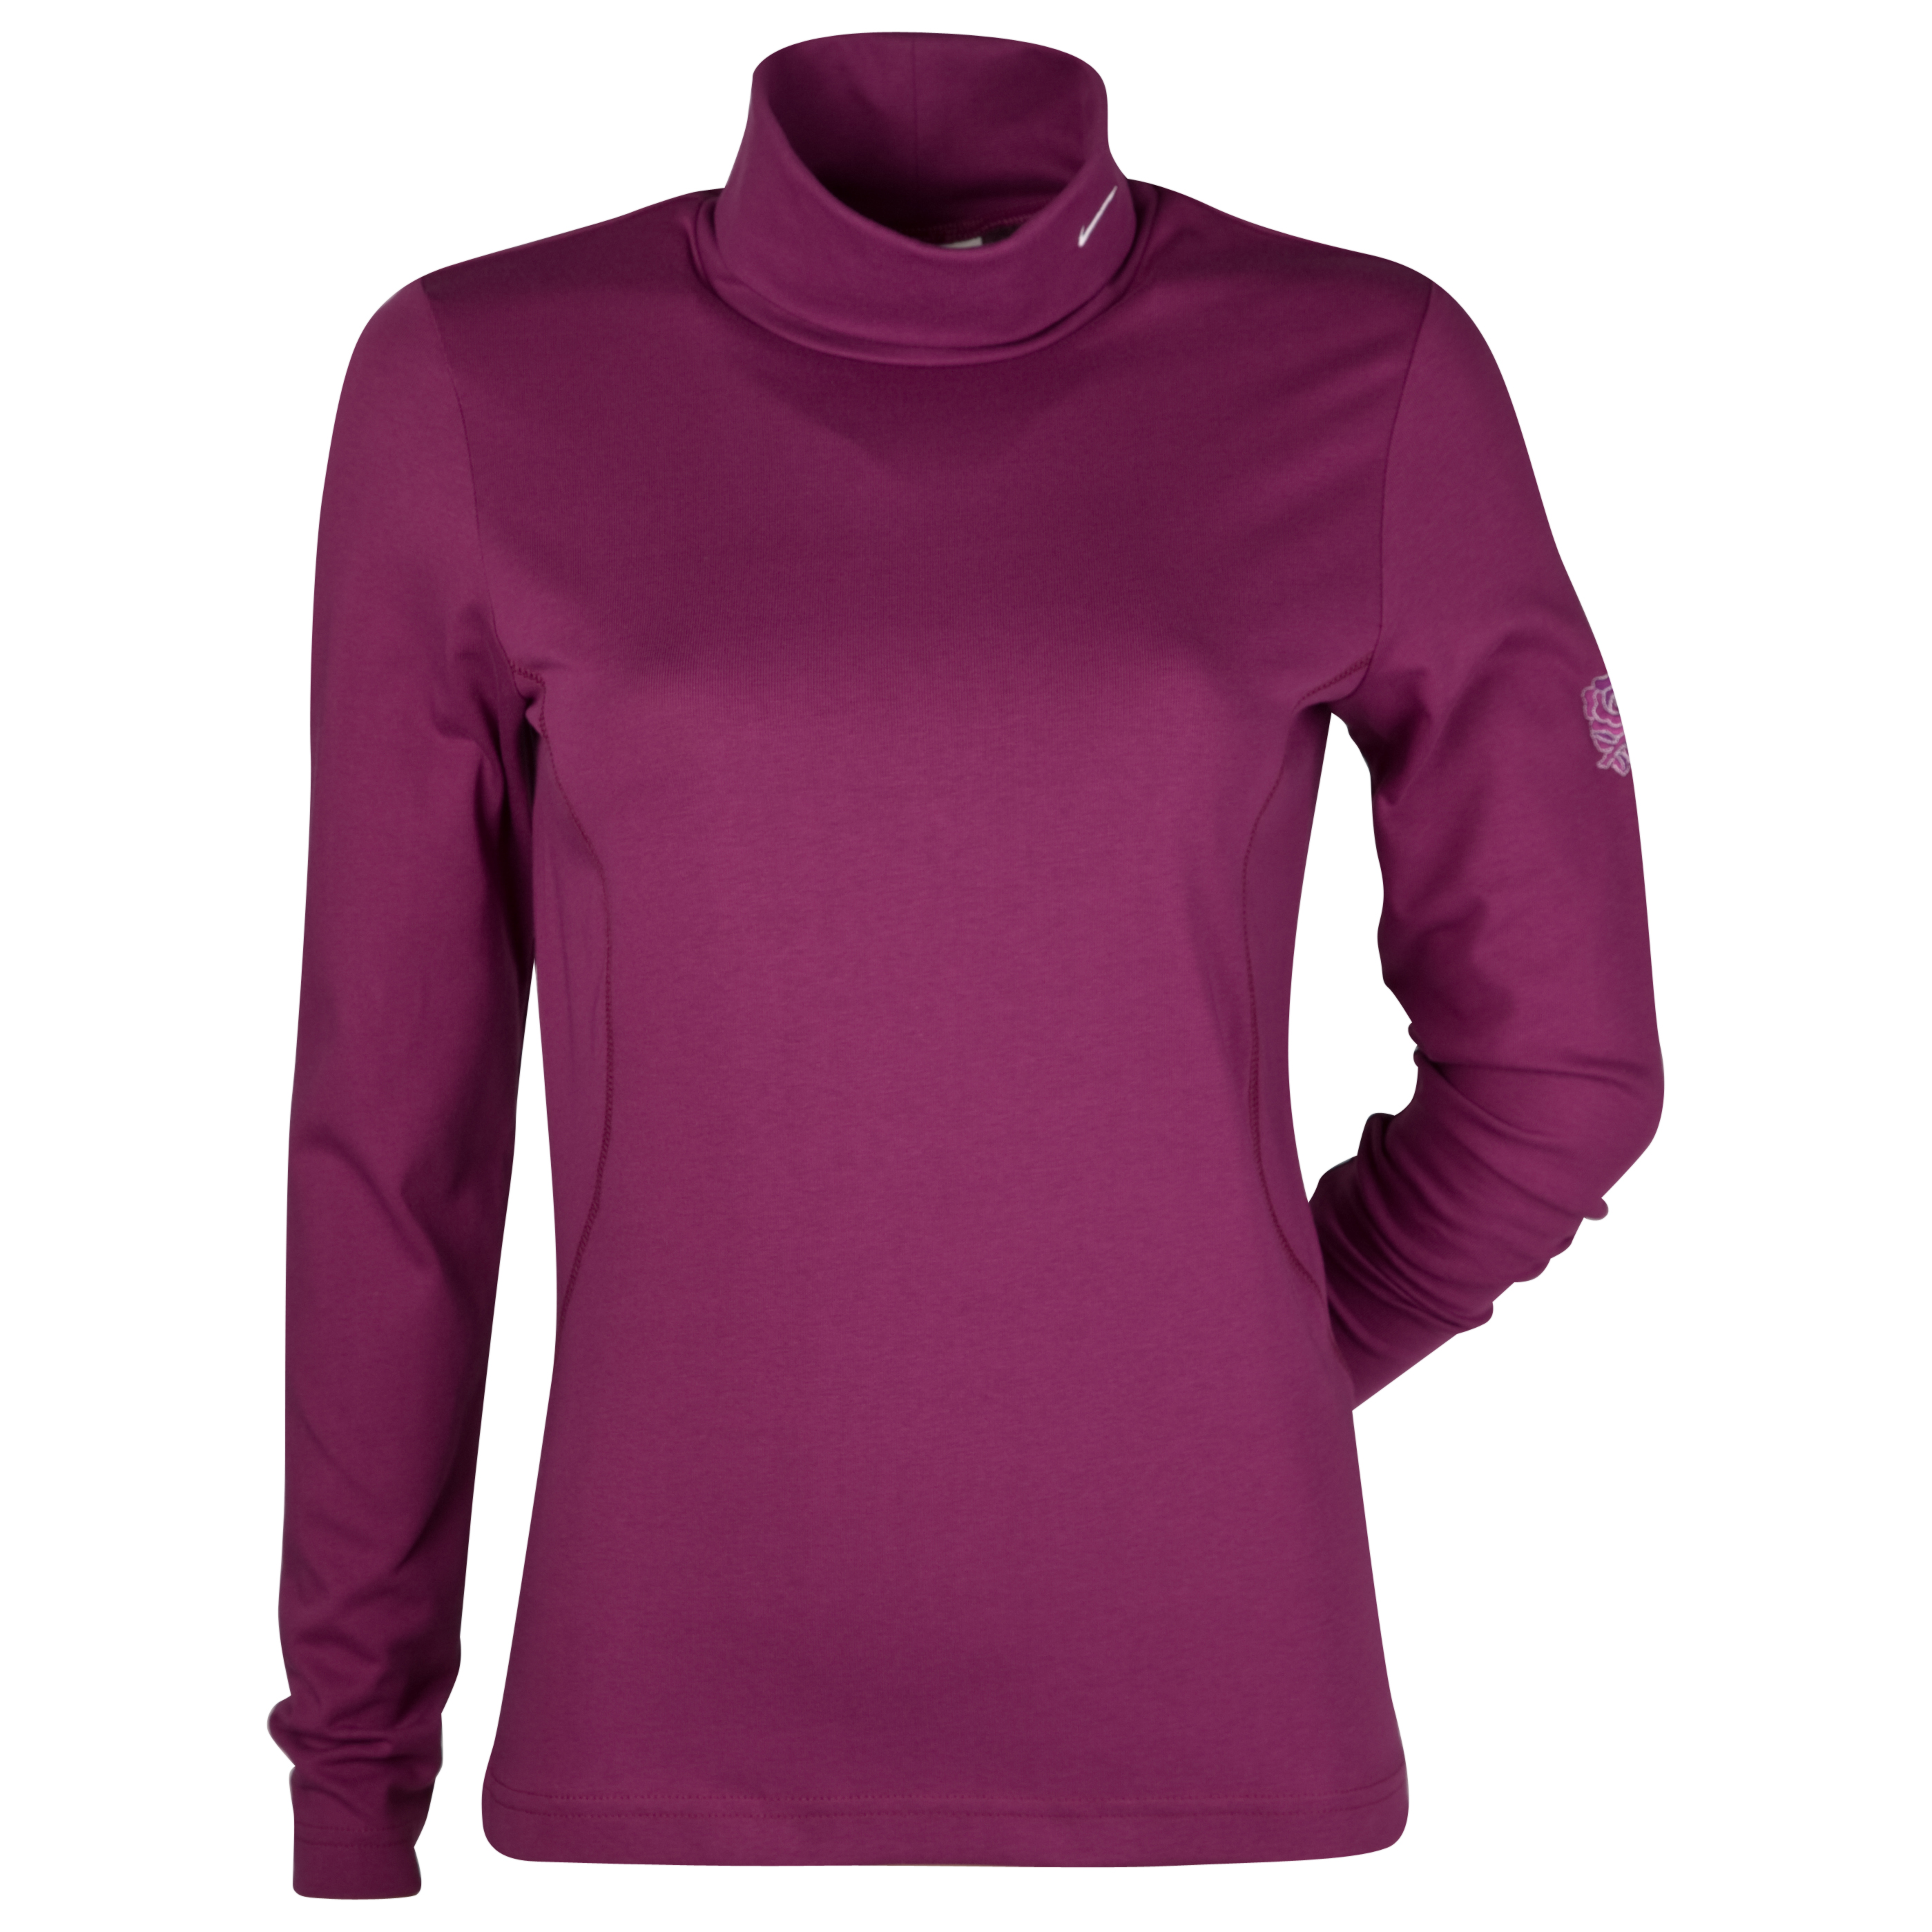 England Rugby Nike Golf Dri-fit Turtle Neck Jersey - Womens. for 25€